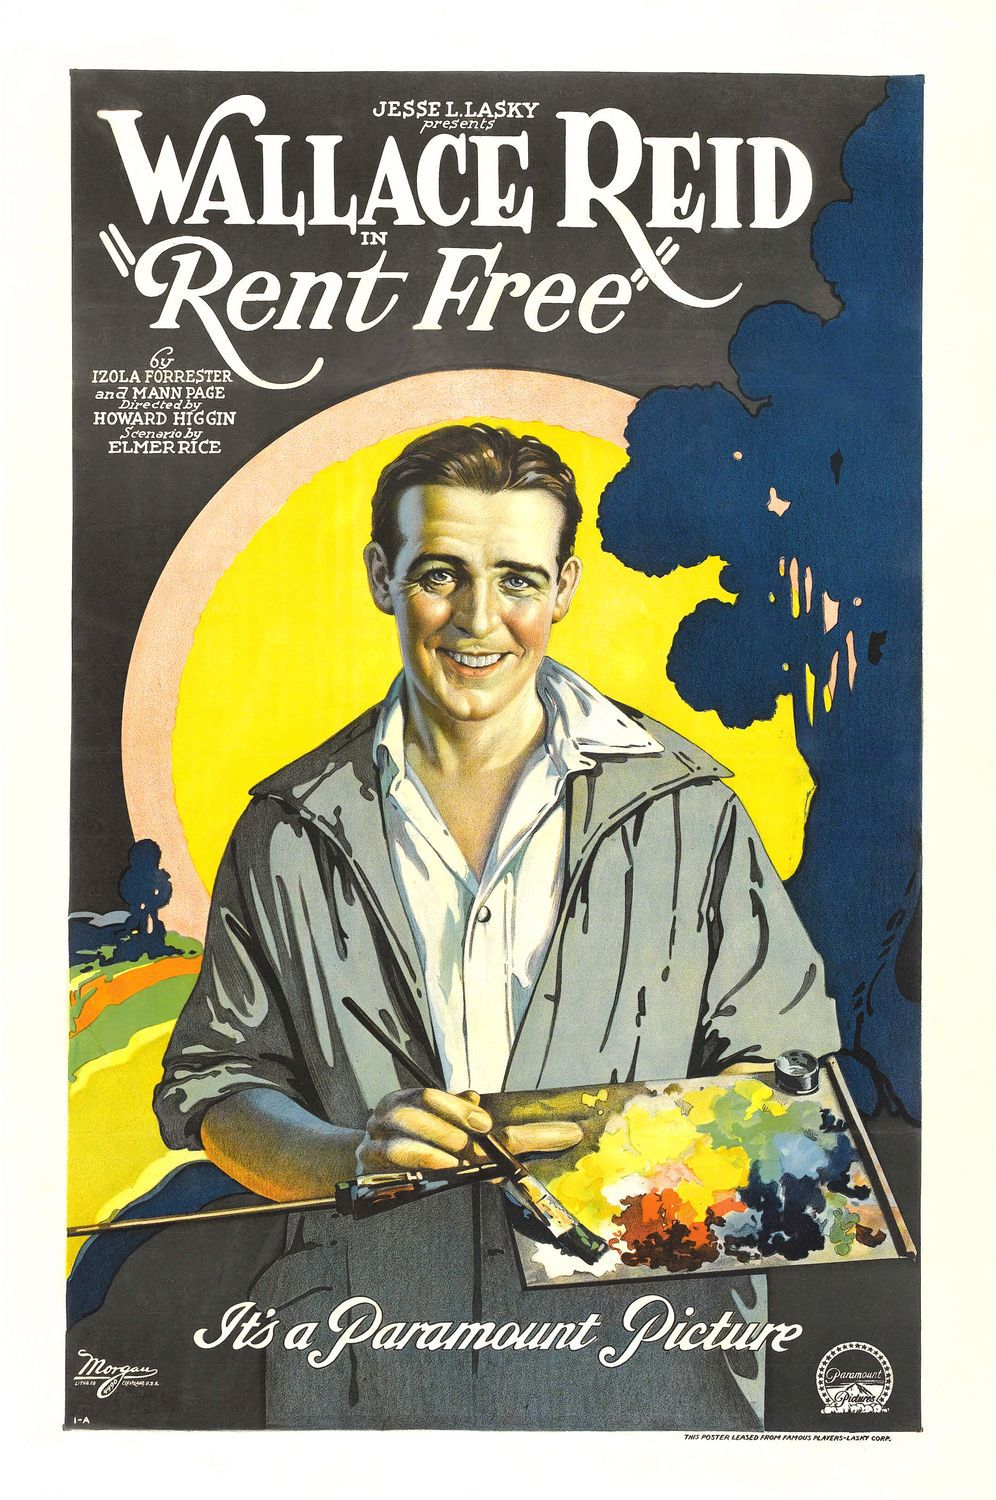 Jesse L. Lasky presents Wallace Reid in Rent Free (1922) - classic old cult film poster